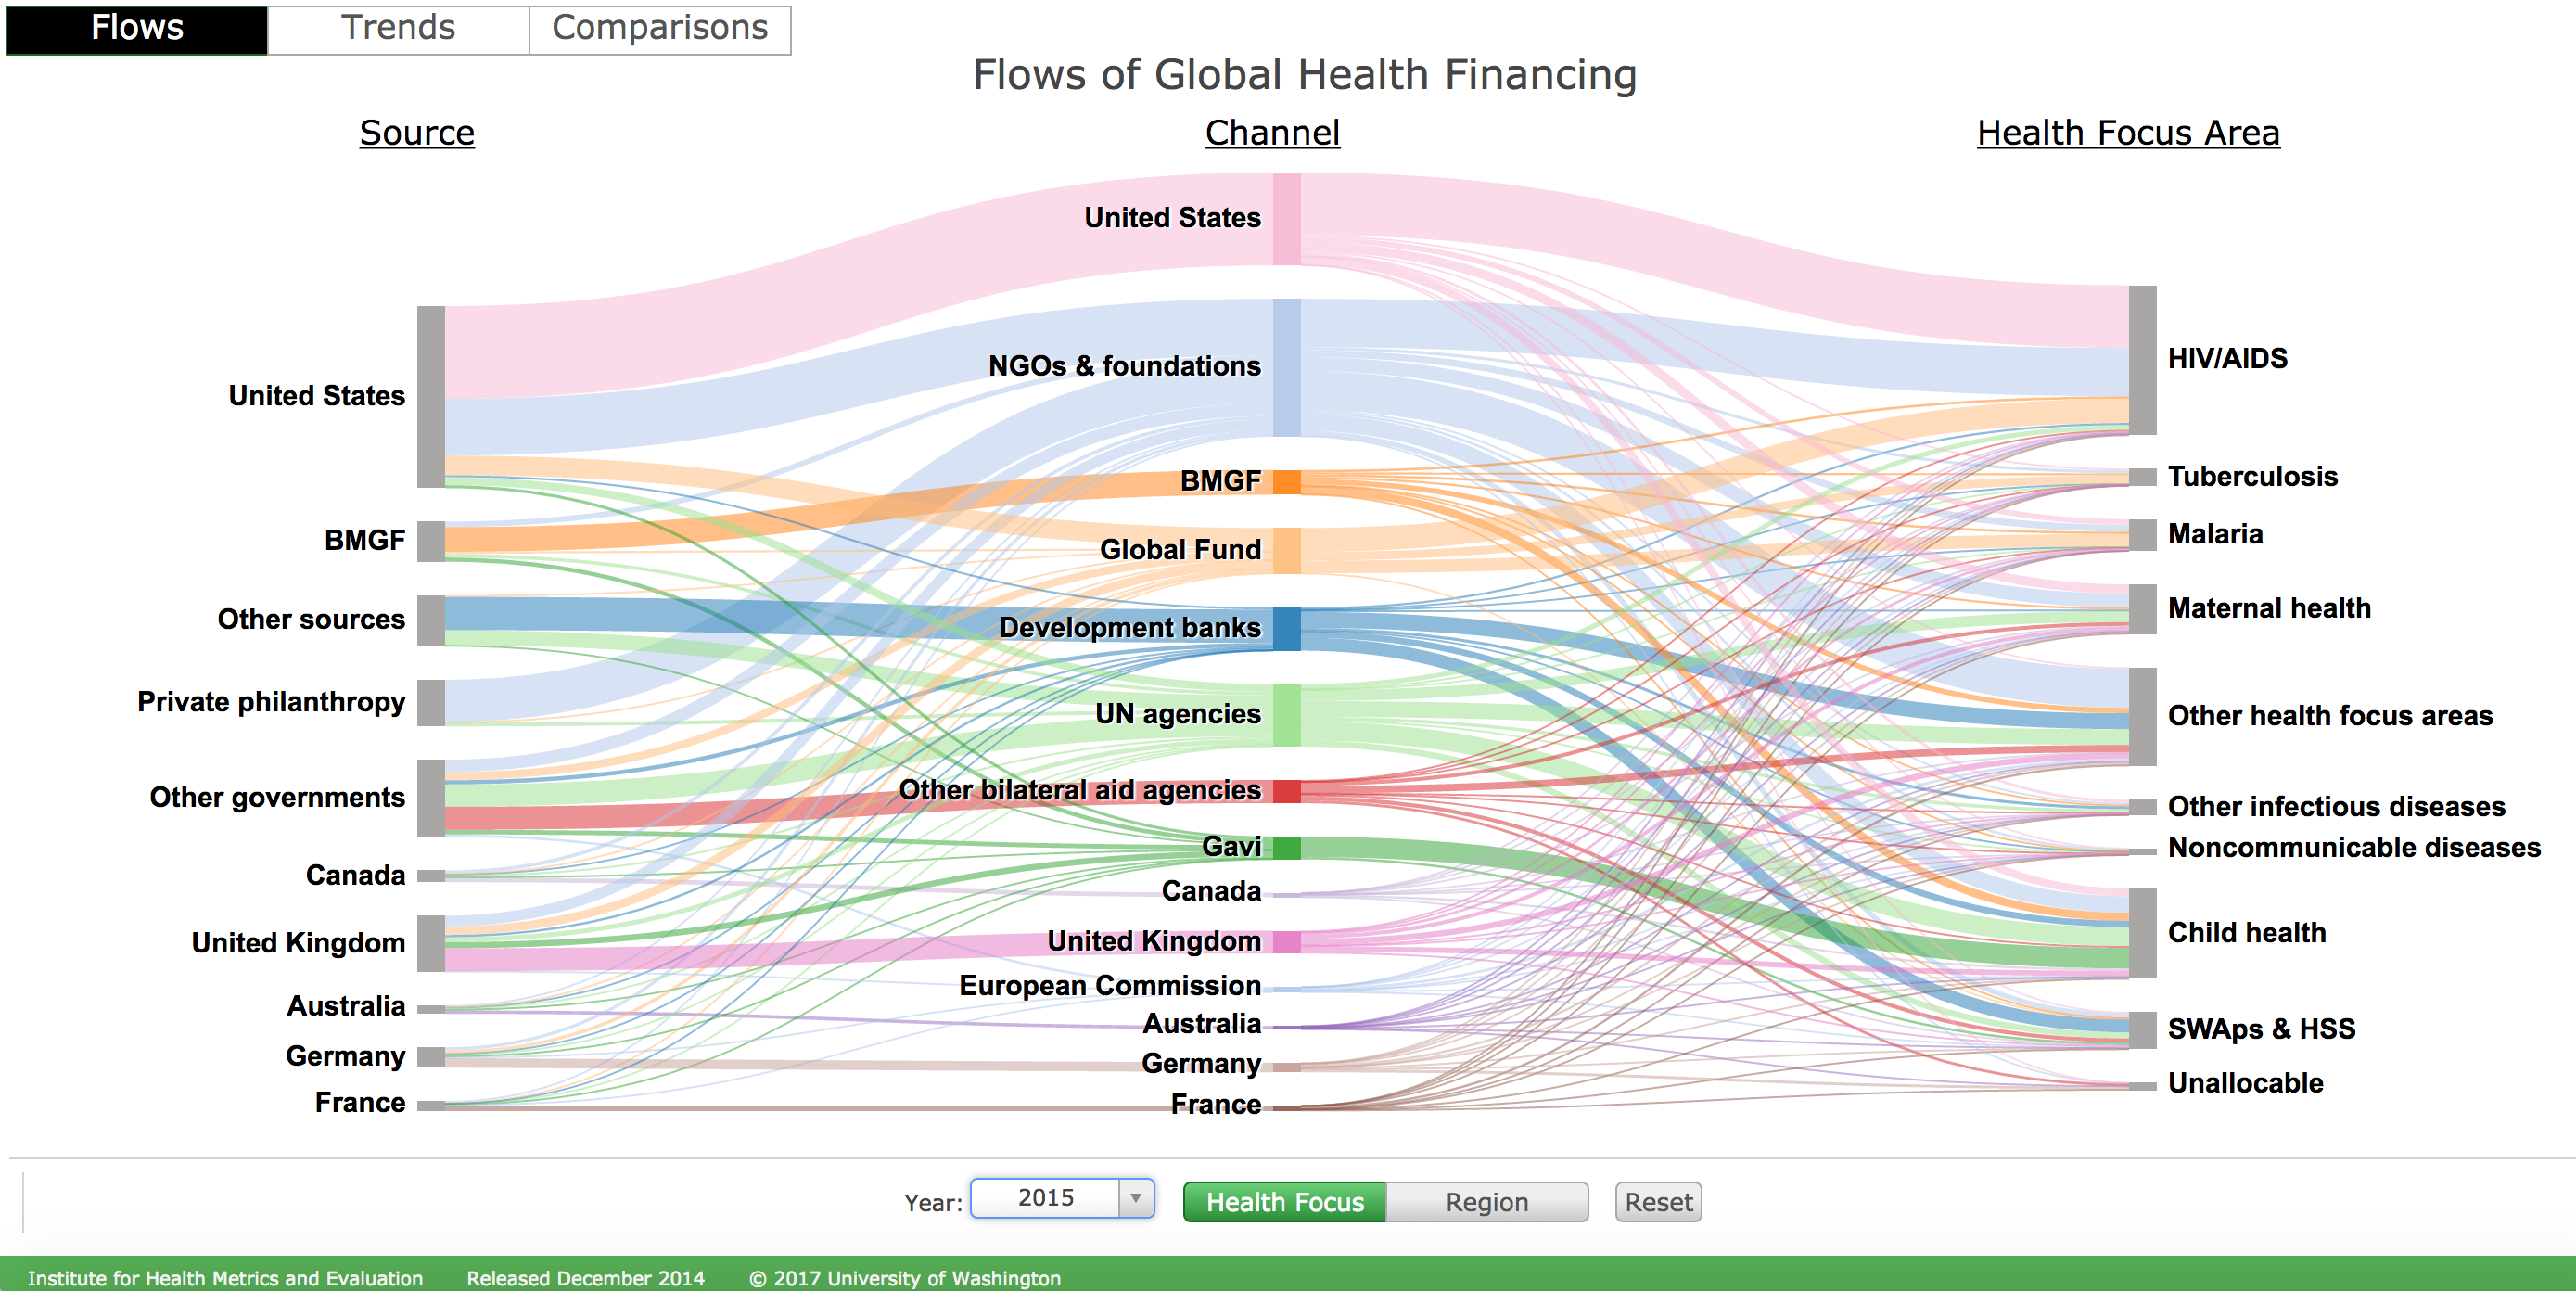 Flows of global health financing. Abbreviations: BMGF, Bill & Melinda Gates Foundation; SWAps & HSS, sector-wide approaches and health-sector support; Gavi, the Vaccine Alliance. Source: Institute for Health Metrics and Evaluation, http://vizhub.healthdata.org/fgh/